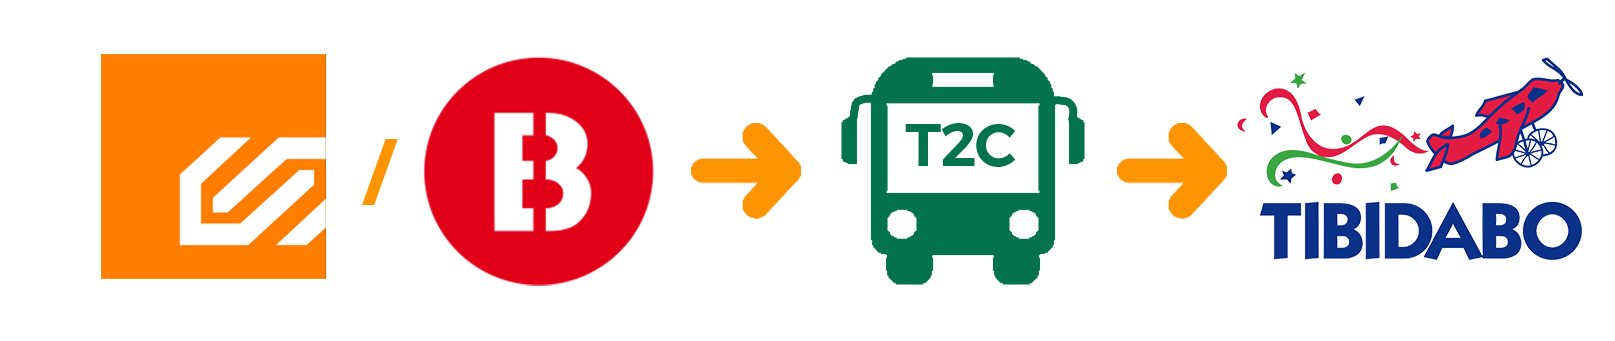 How to get to T2C